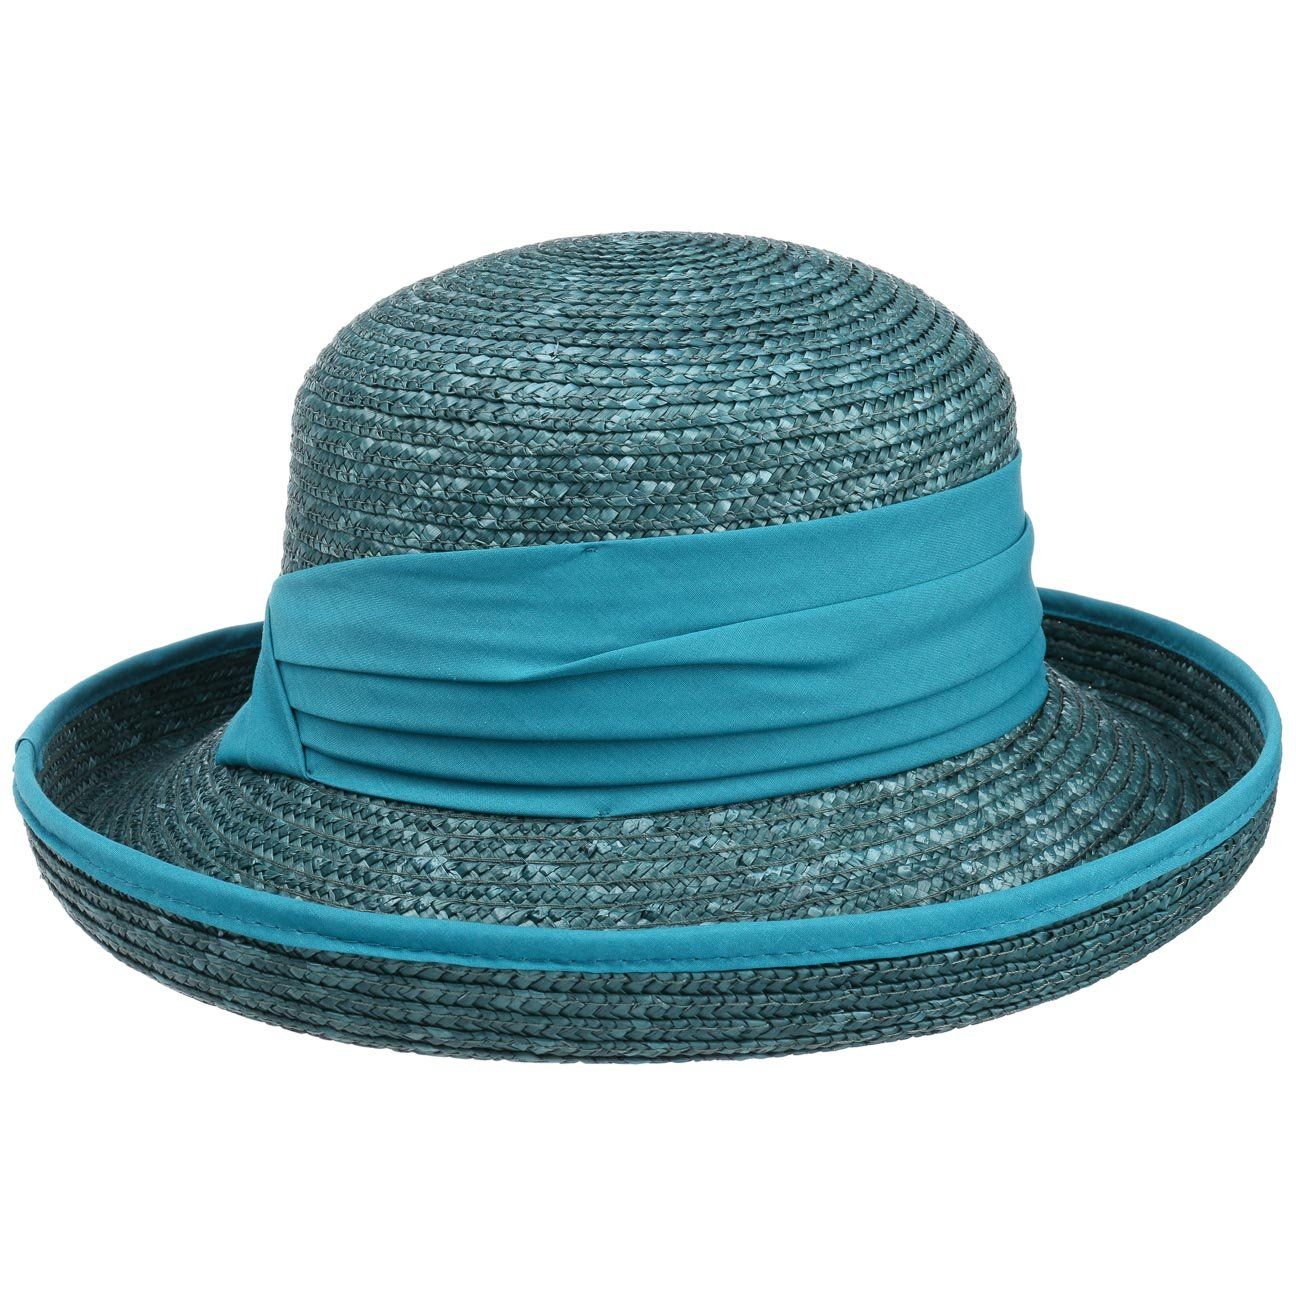 Dilara Straw Hat Seeberger women´s hat cuffed hat